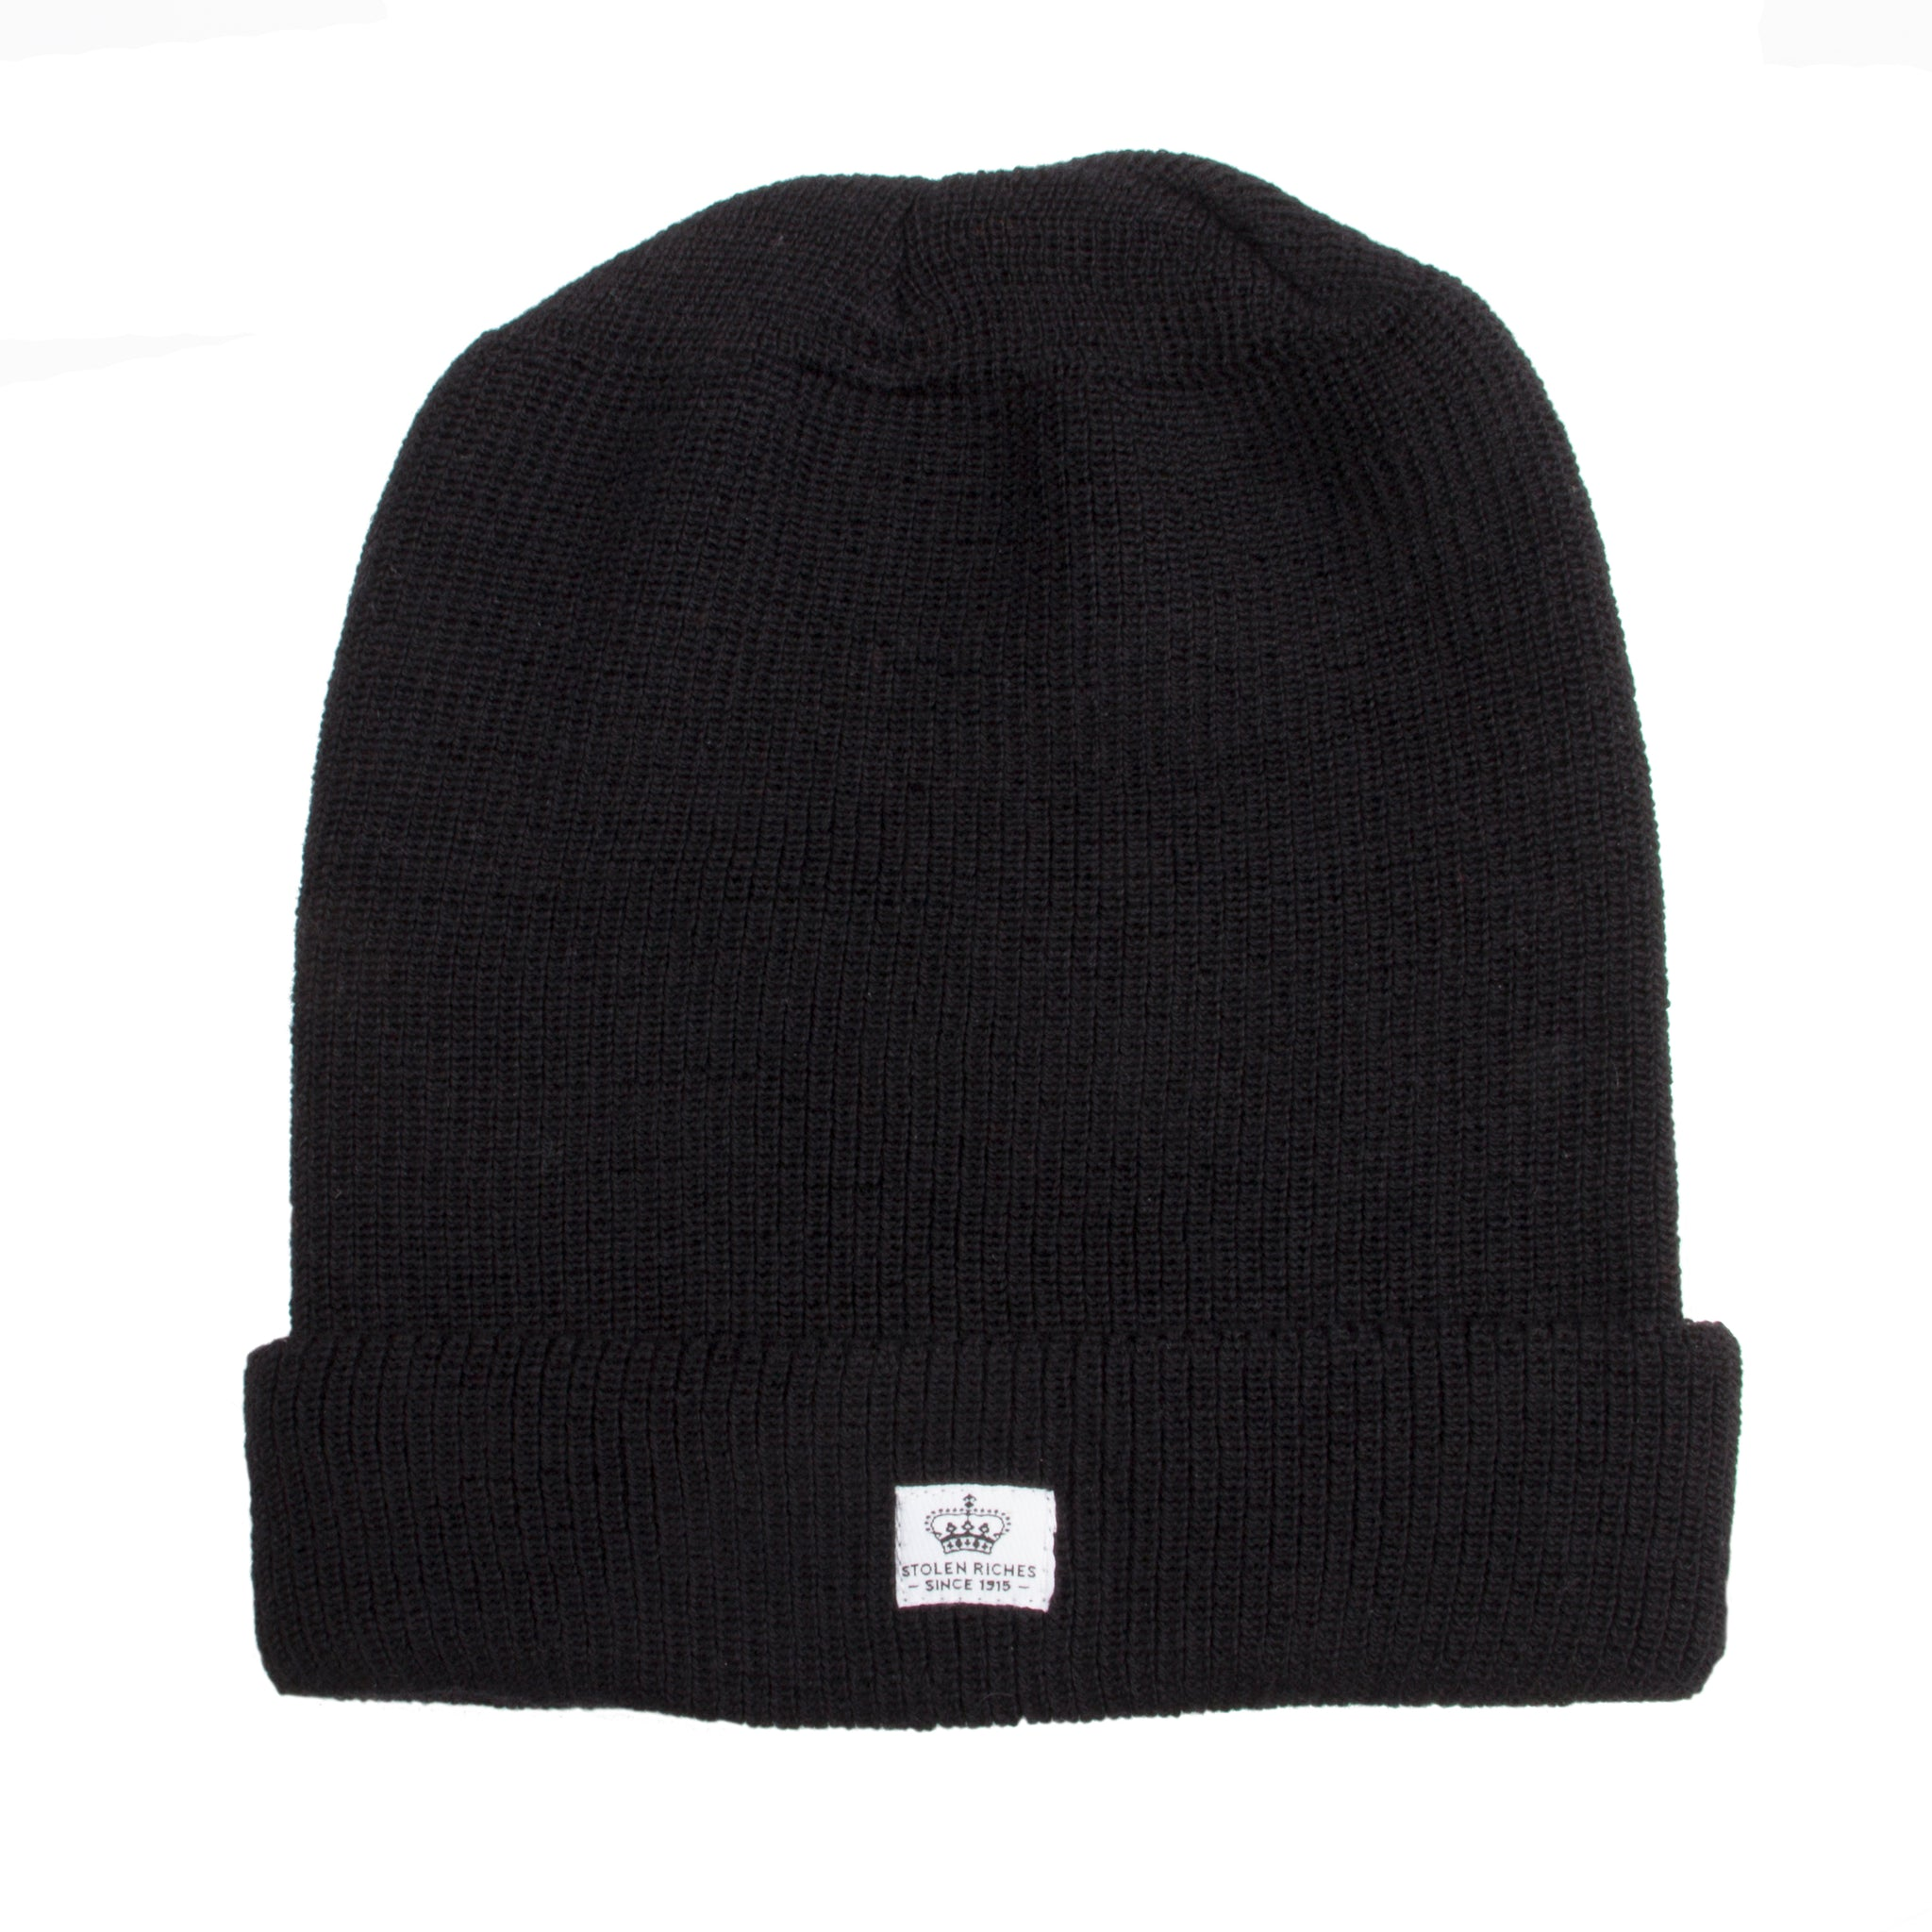 Folsom Black Wool Toque - Stolen Riches / CA